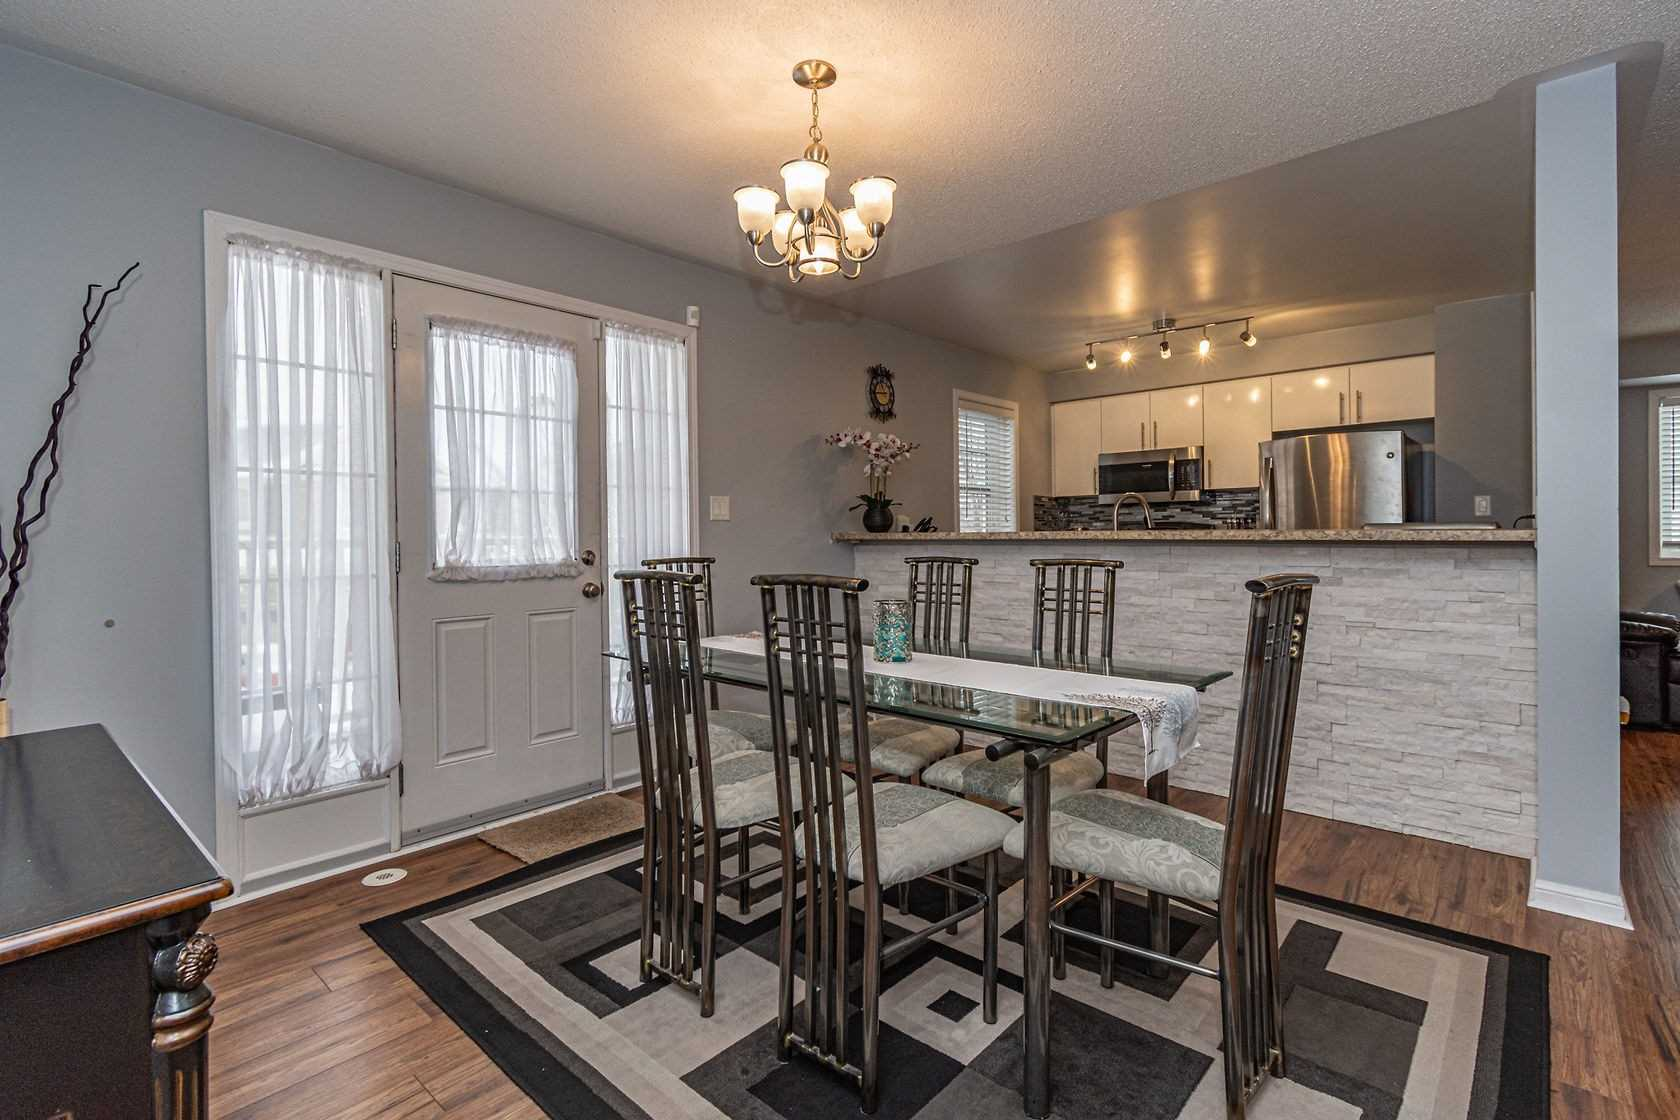 Image 19 of 20 showing inside of 3 Bedroom Att/Row/Twnhouse 3-Storey house for sale at 912 Ambroise Cres, Milton L9T0M2